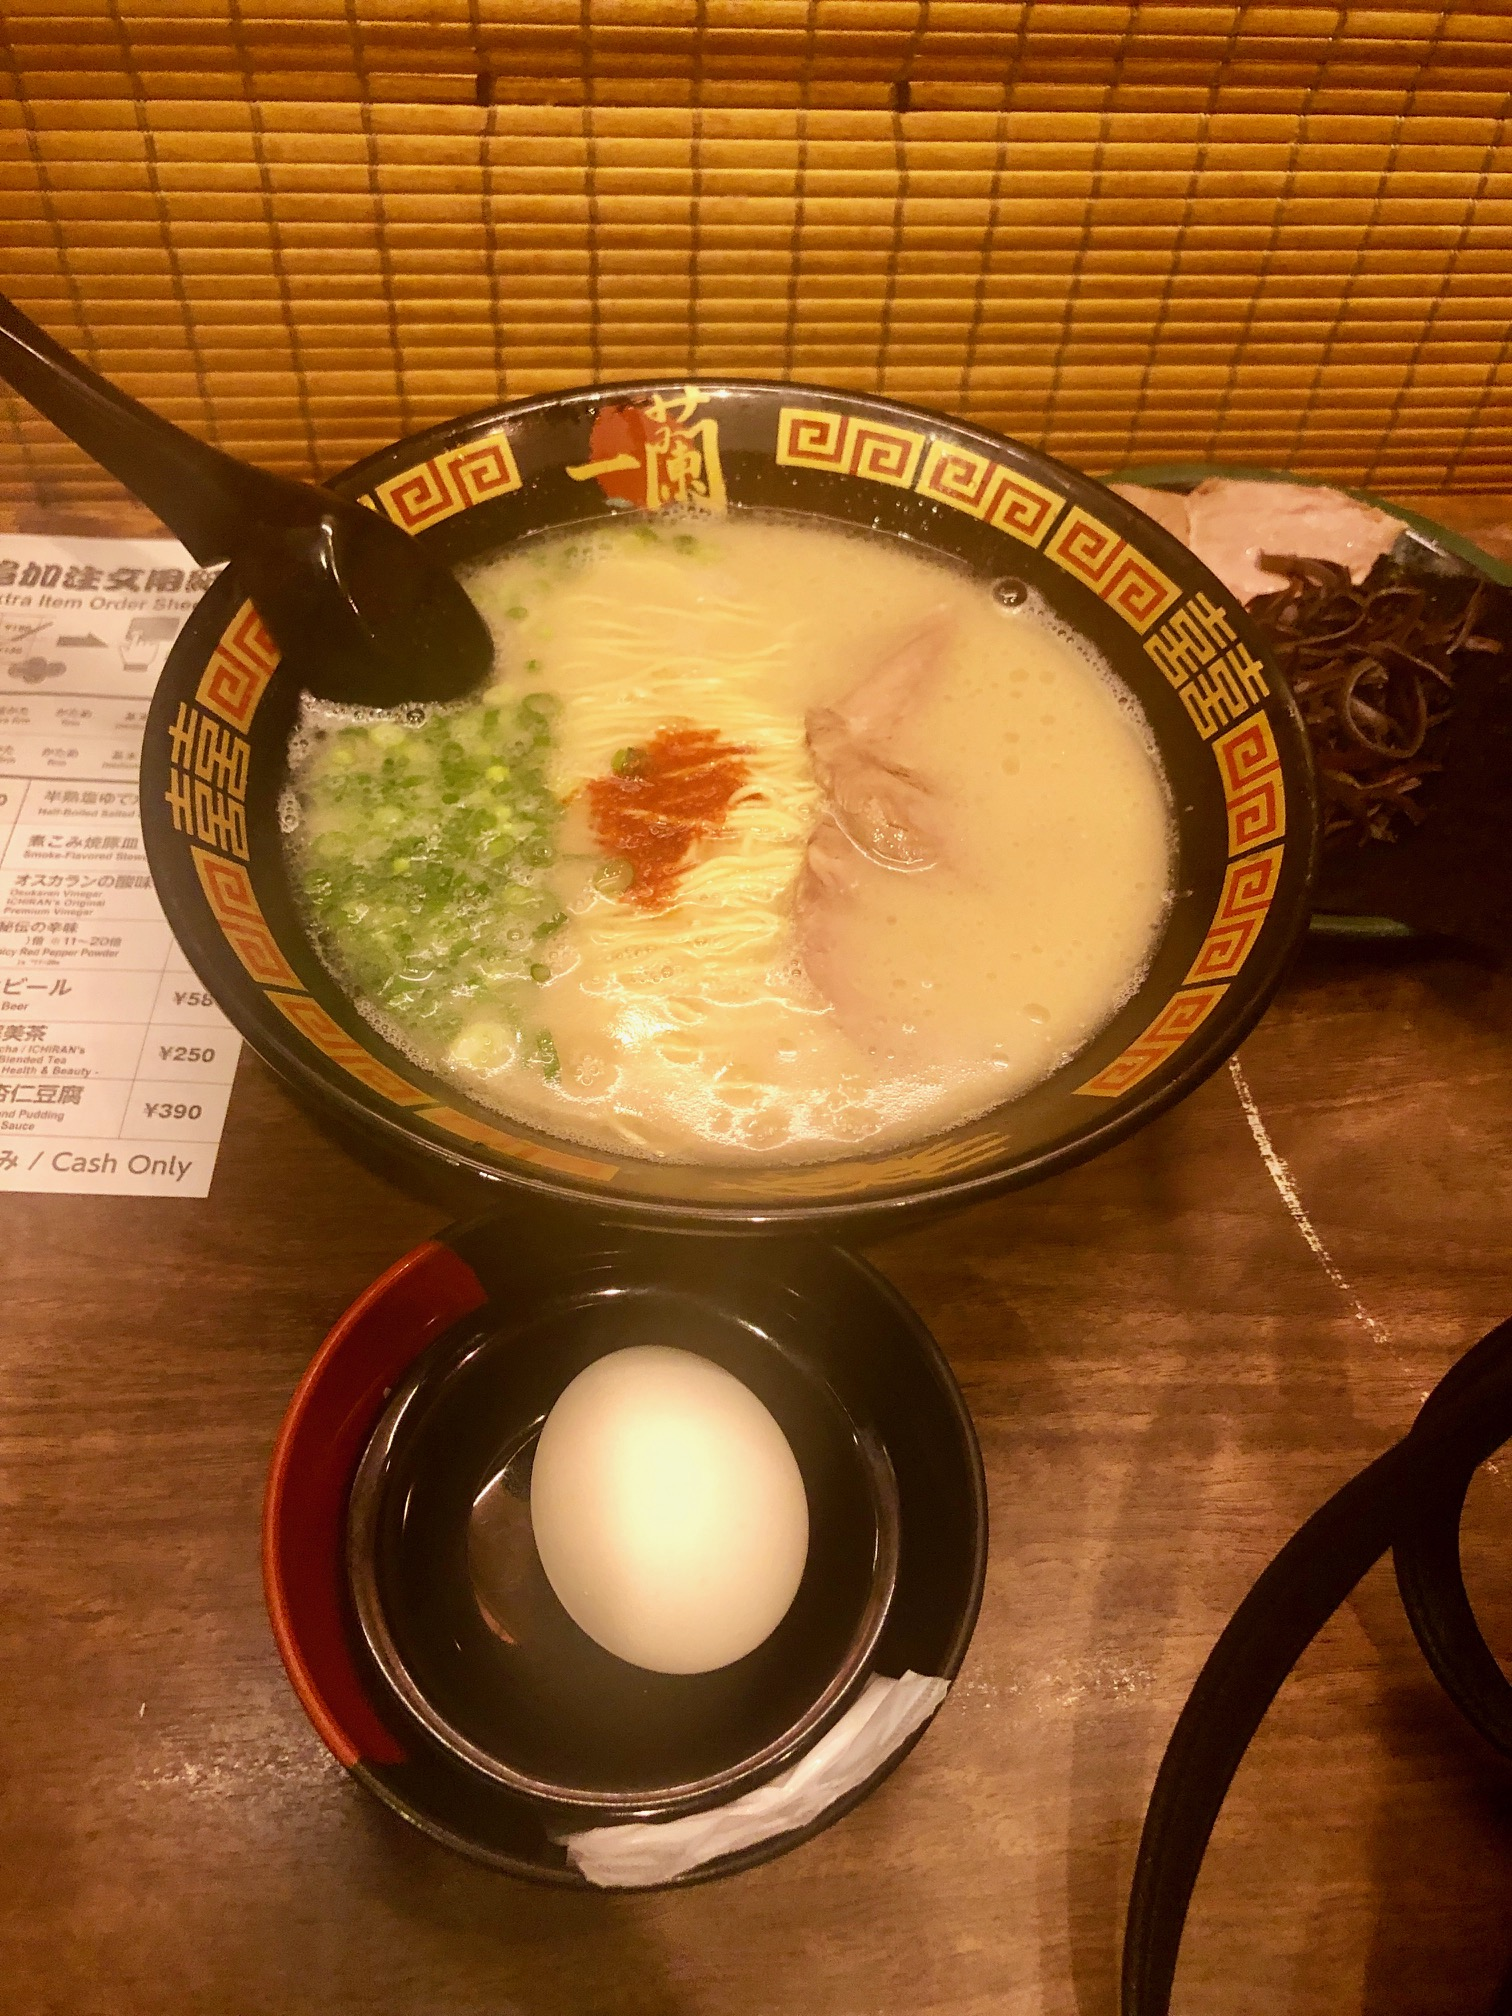 Ramen from Ichiran Ramen in Shibuya